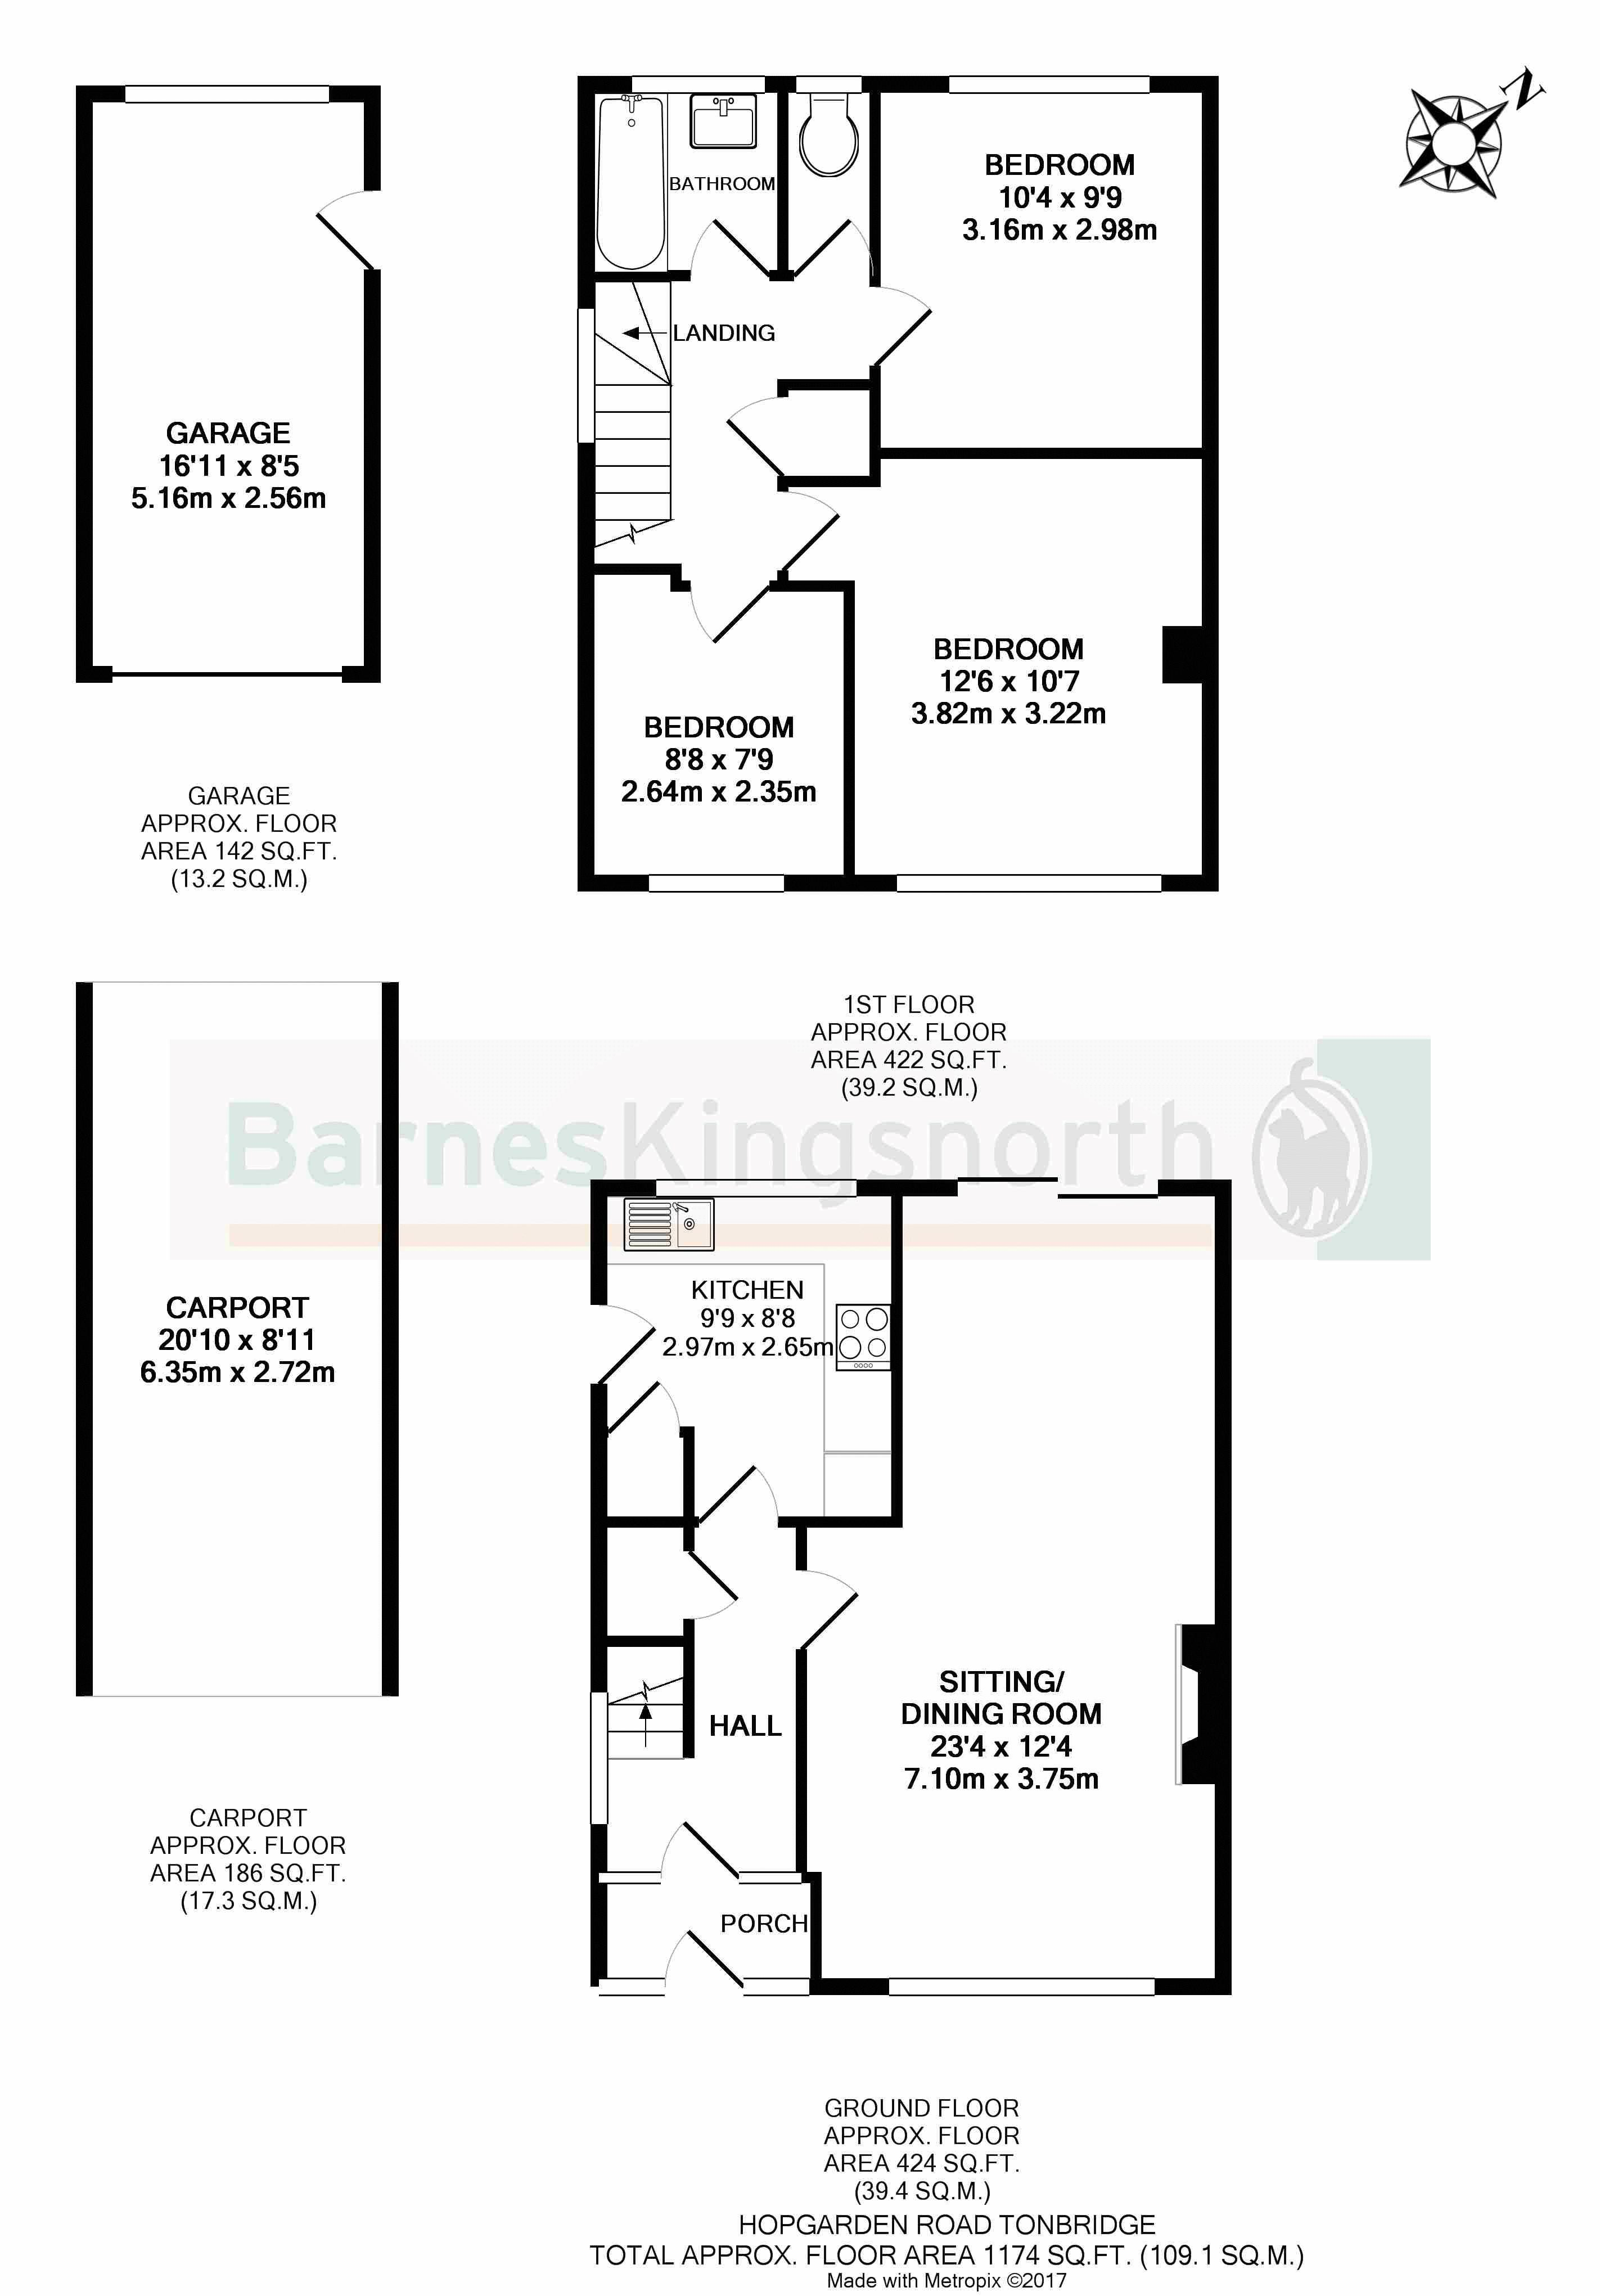 wiring diagram for house db south africa with Detached Garage With Carport on Wiring Diagram For House In South Africa further Muncie Pto Wiring Harness also Vf Wiring Diagram besides Pv  biner Box Wiring Diagram furthermore Detached Garage With Carport.